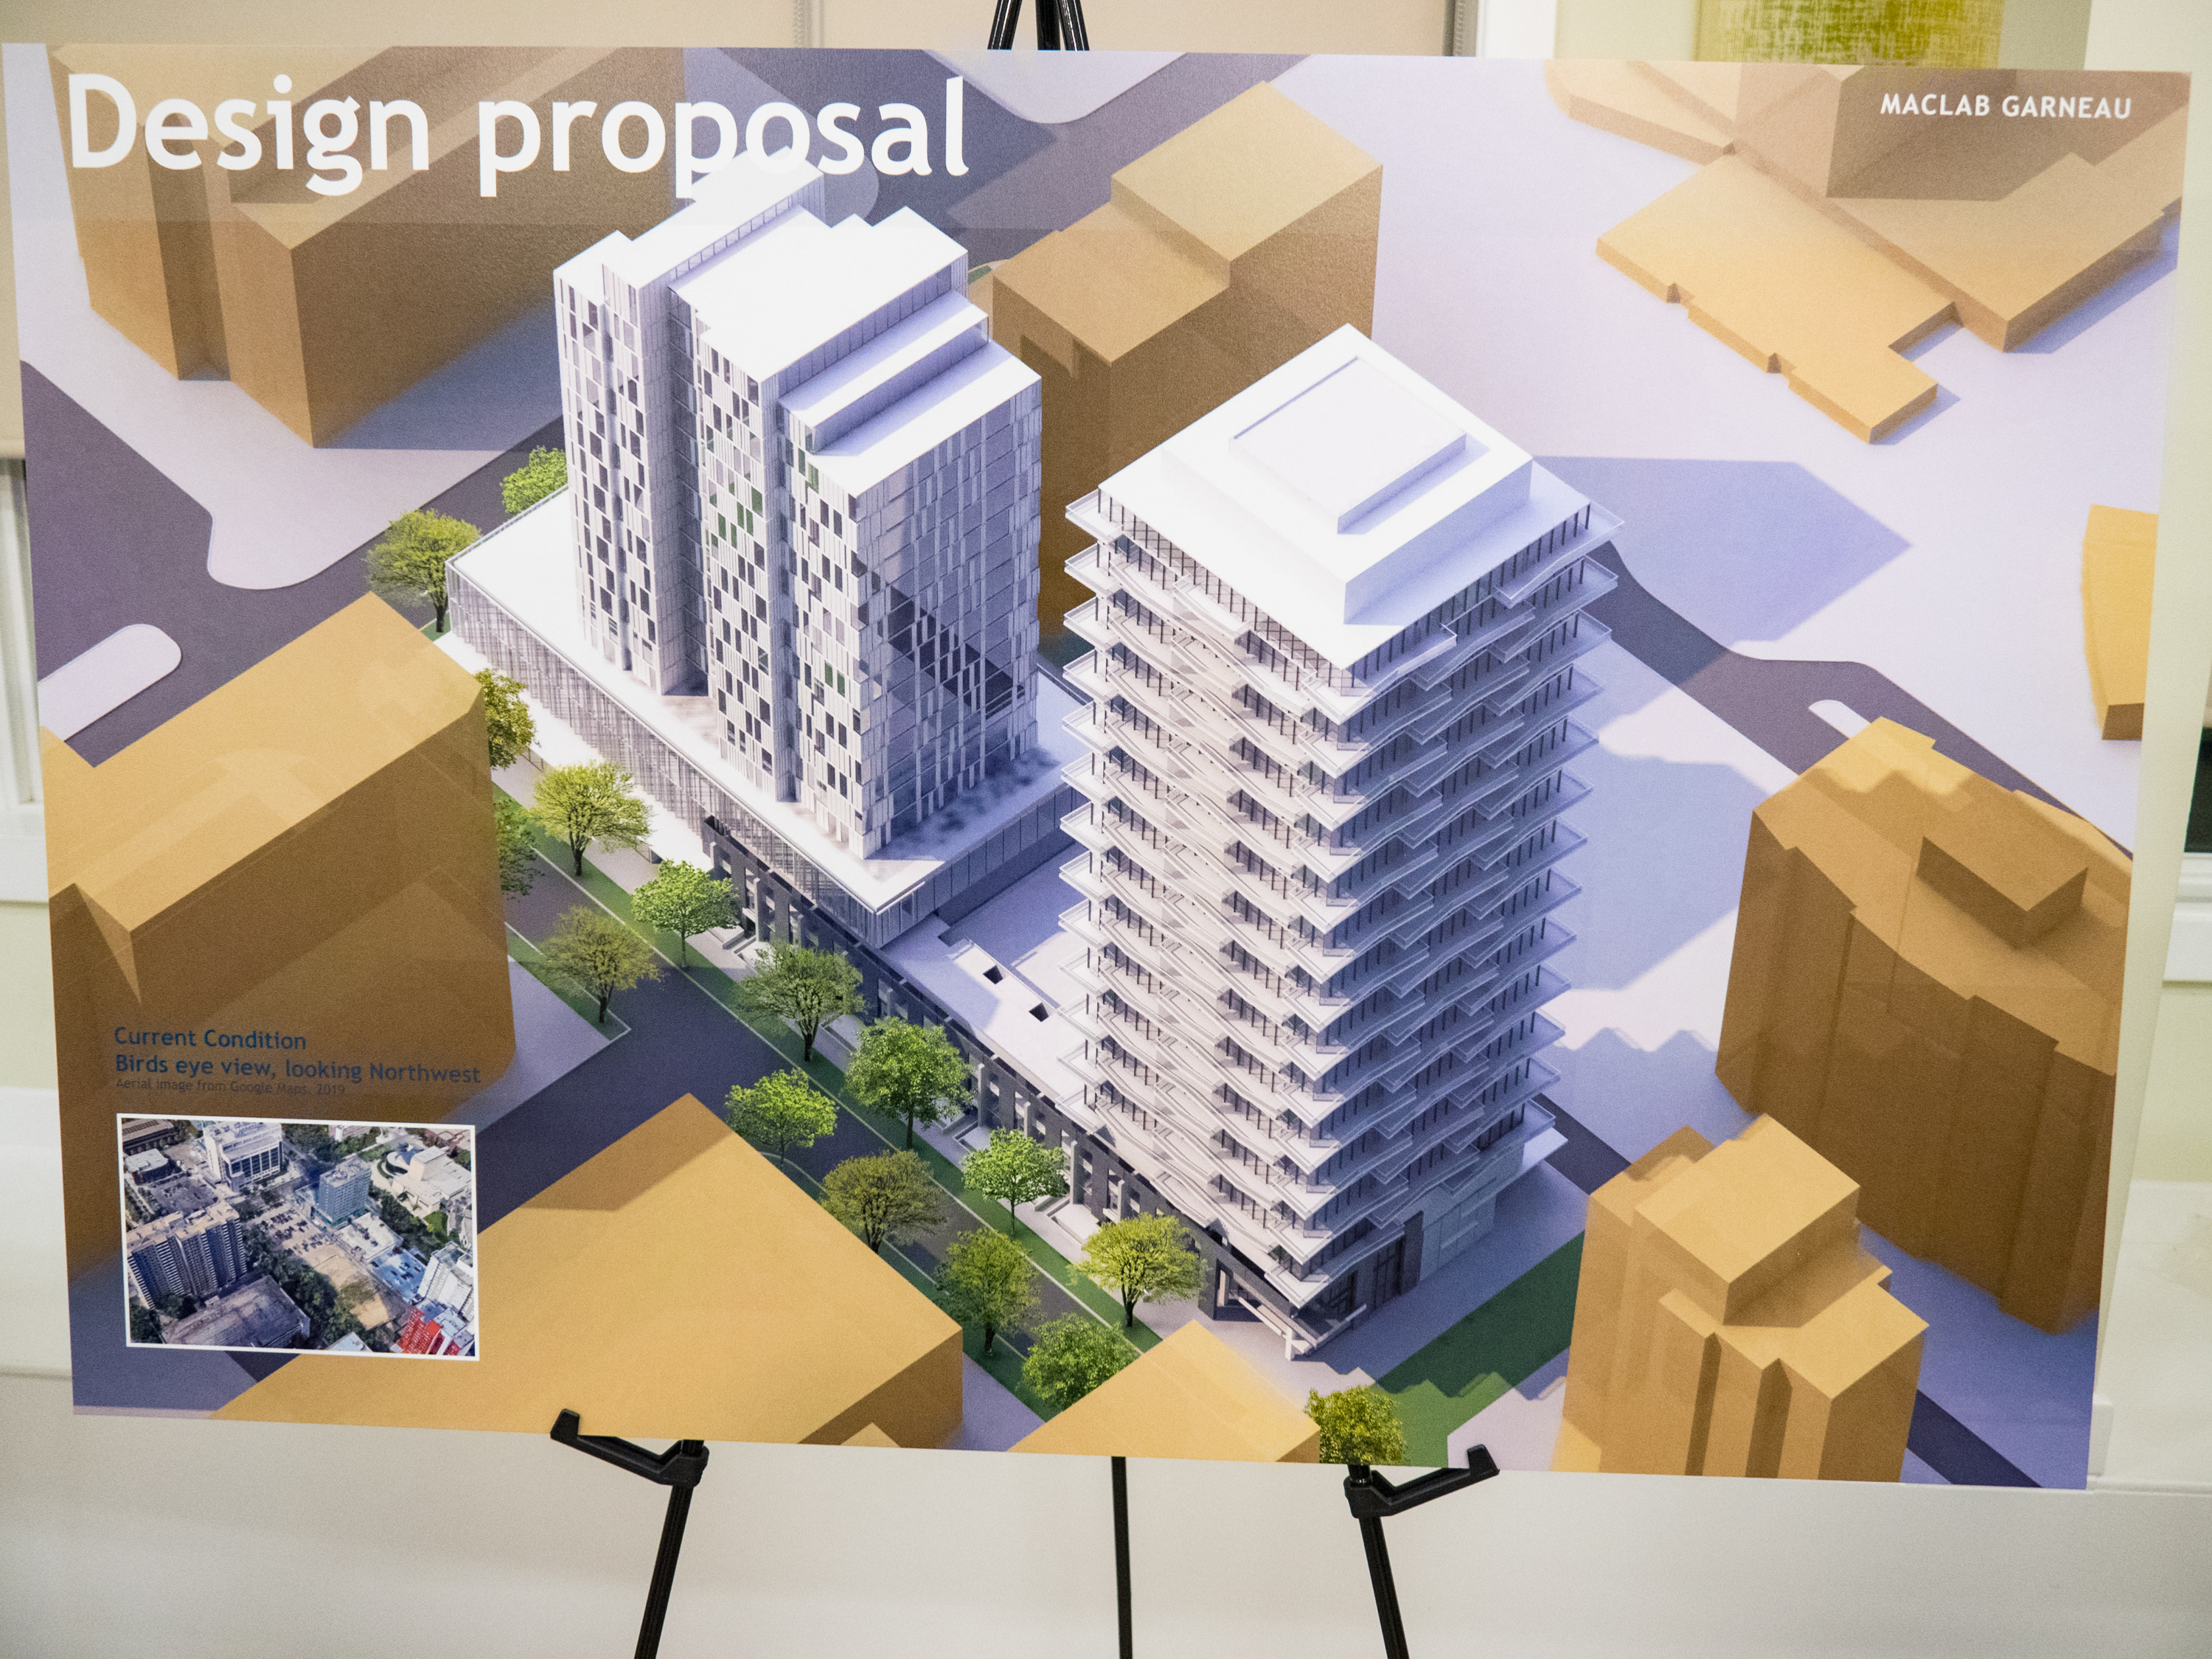 Tallest Tower Proposed For Garneau